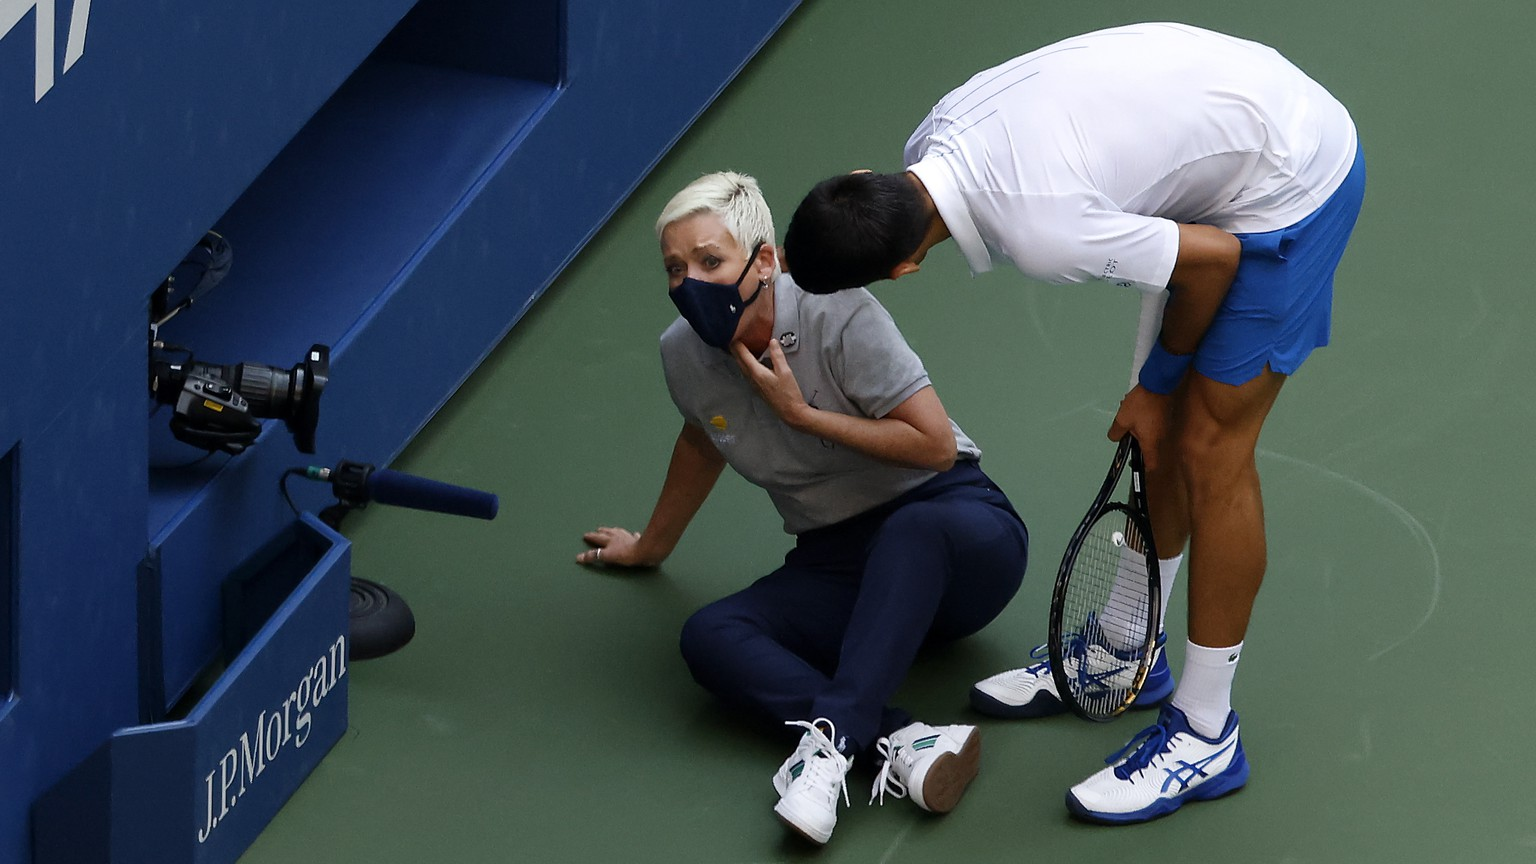 epa08651641 Novak Djokovic of Serbia (R) tries to help a linesperson after hitting her with a ball in the throat during his match against Pablo Carreno Busta of Spain on the seventh day of the US Open Tennis Championships at the USTA National Tennis Center in Flushing Meadows, New York, USA, 06 September 2020. Djokovic was defaulted from tournament. Due to the coronavirus pandemic, the US Open is being played without fans and runs from 31 August through 13 September.  EPA/JASON SZENES